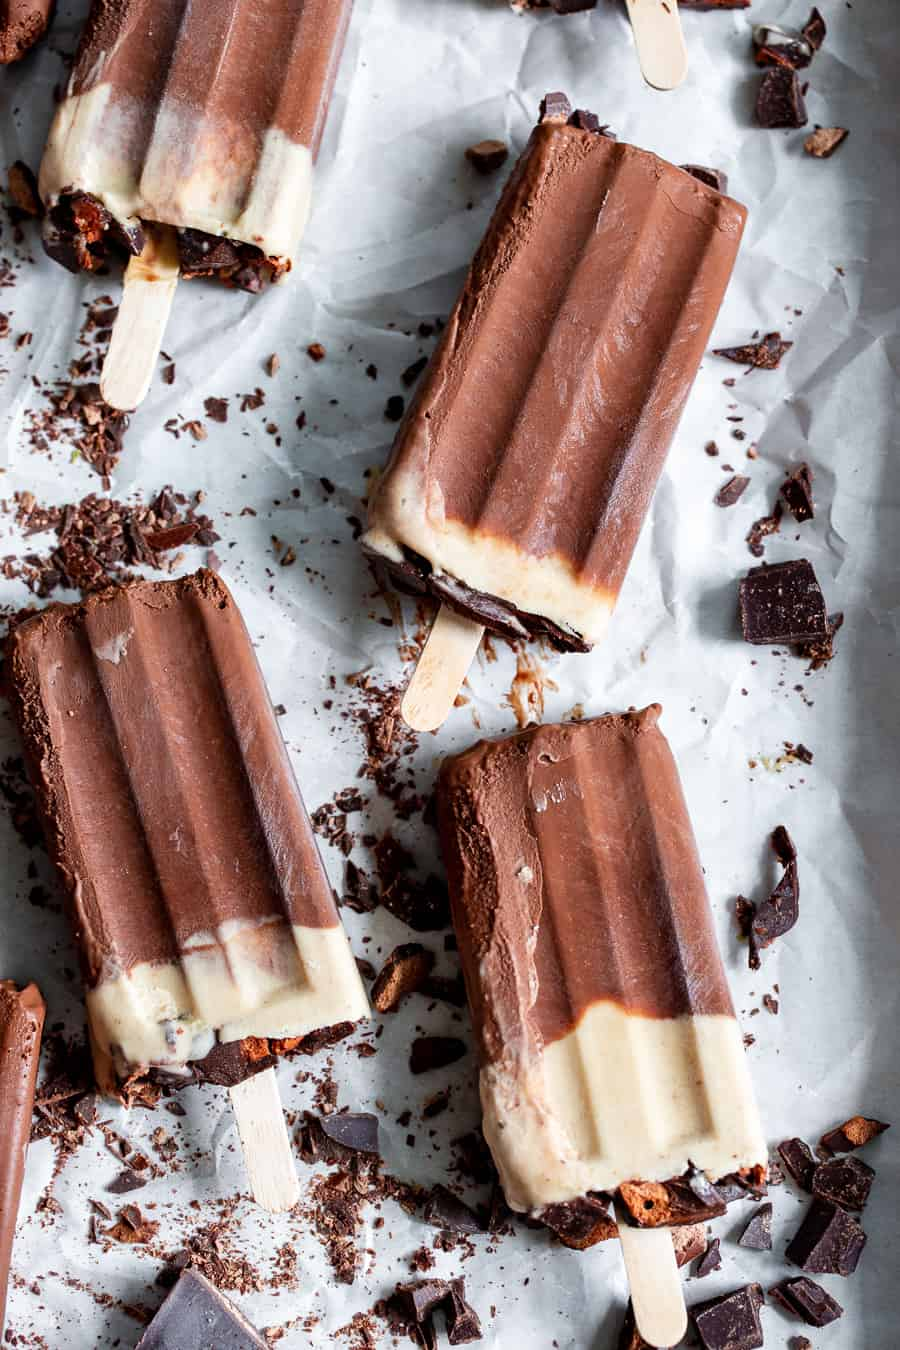 These chocolate peanut butter fudgesicles are just what you need for a healthy frozen treat!  Packed with rich chocolate flavor and a fudgy texture, they're dairy free, refined sugar free, vegan and paleo.  Easy to make in a blender and family approved! #vegan #paleo #peanutbutter #fudgesicles #popsicles #dairyfree #cleaneating